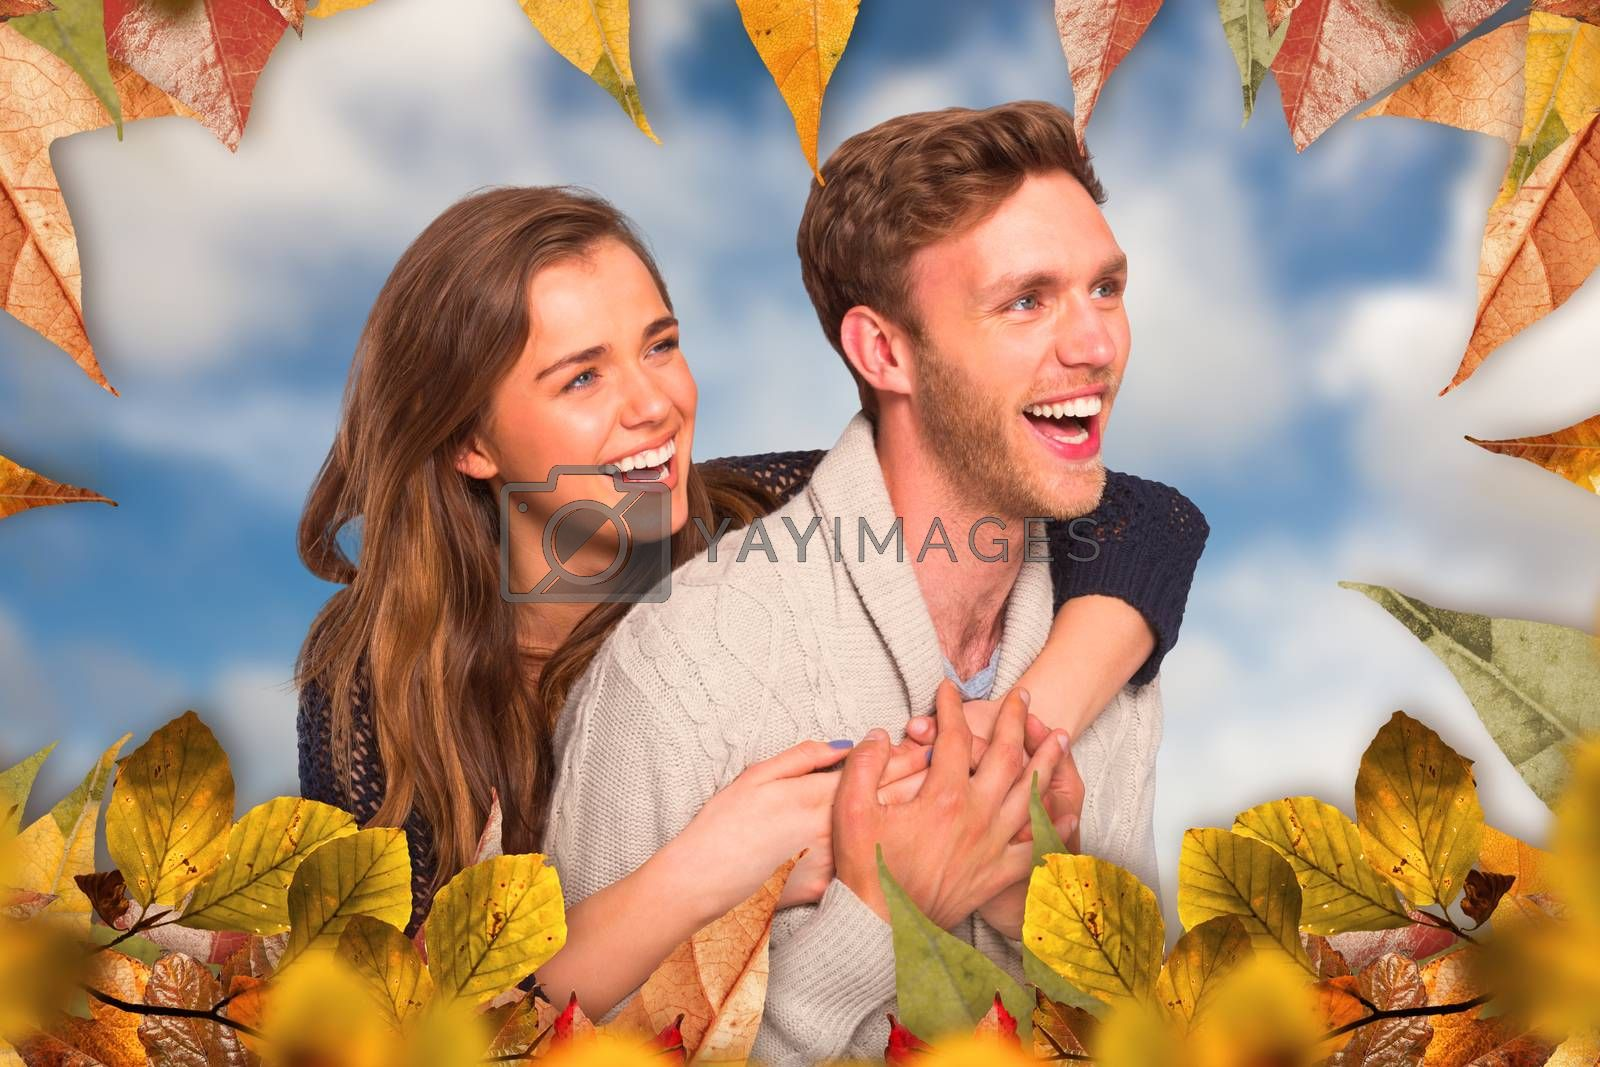 Composite image of cheerful young couple embracing by Wavebreakmedia